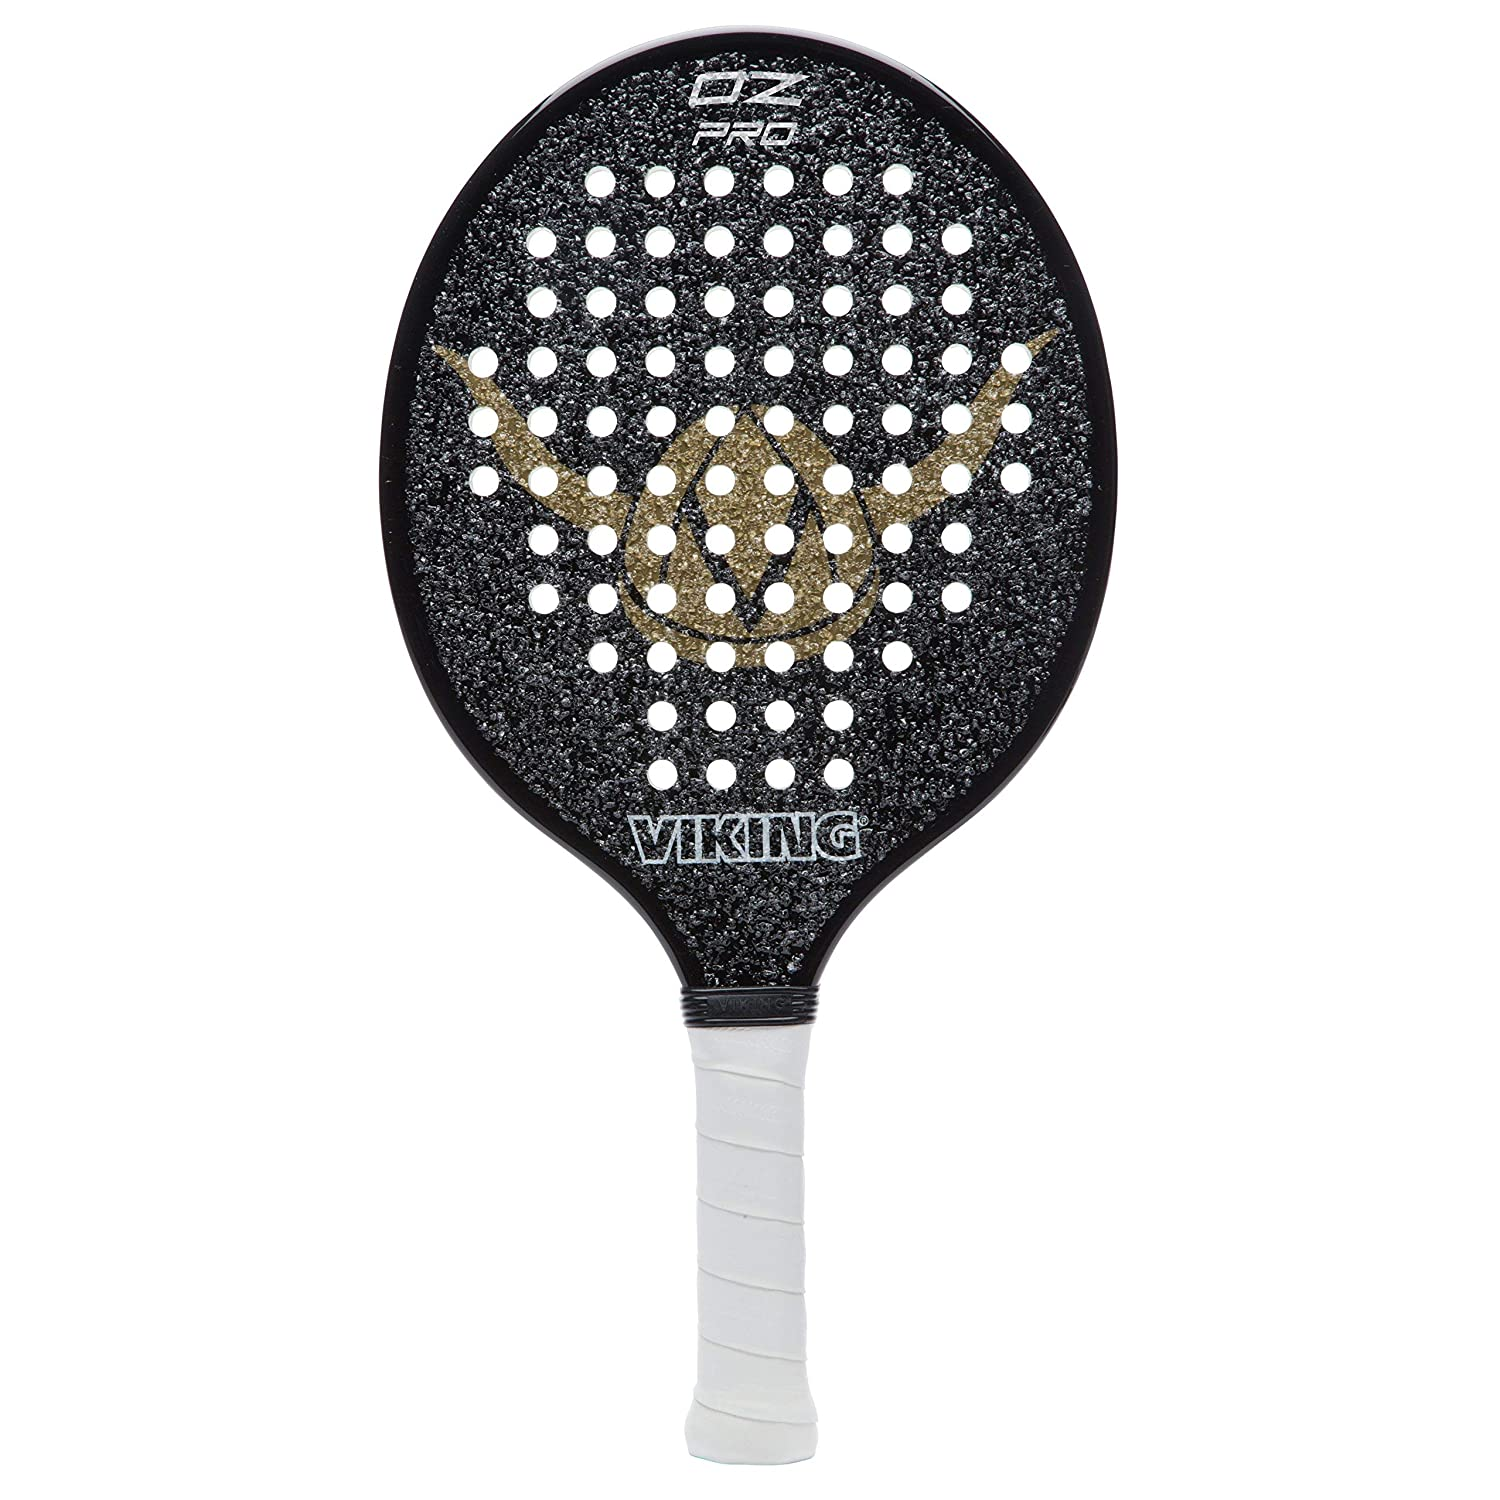 Amazon.com: Viking oz Pro Plataforma de tenis Paddle: Sports ...